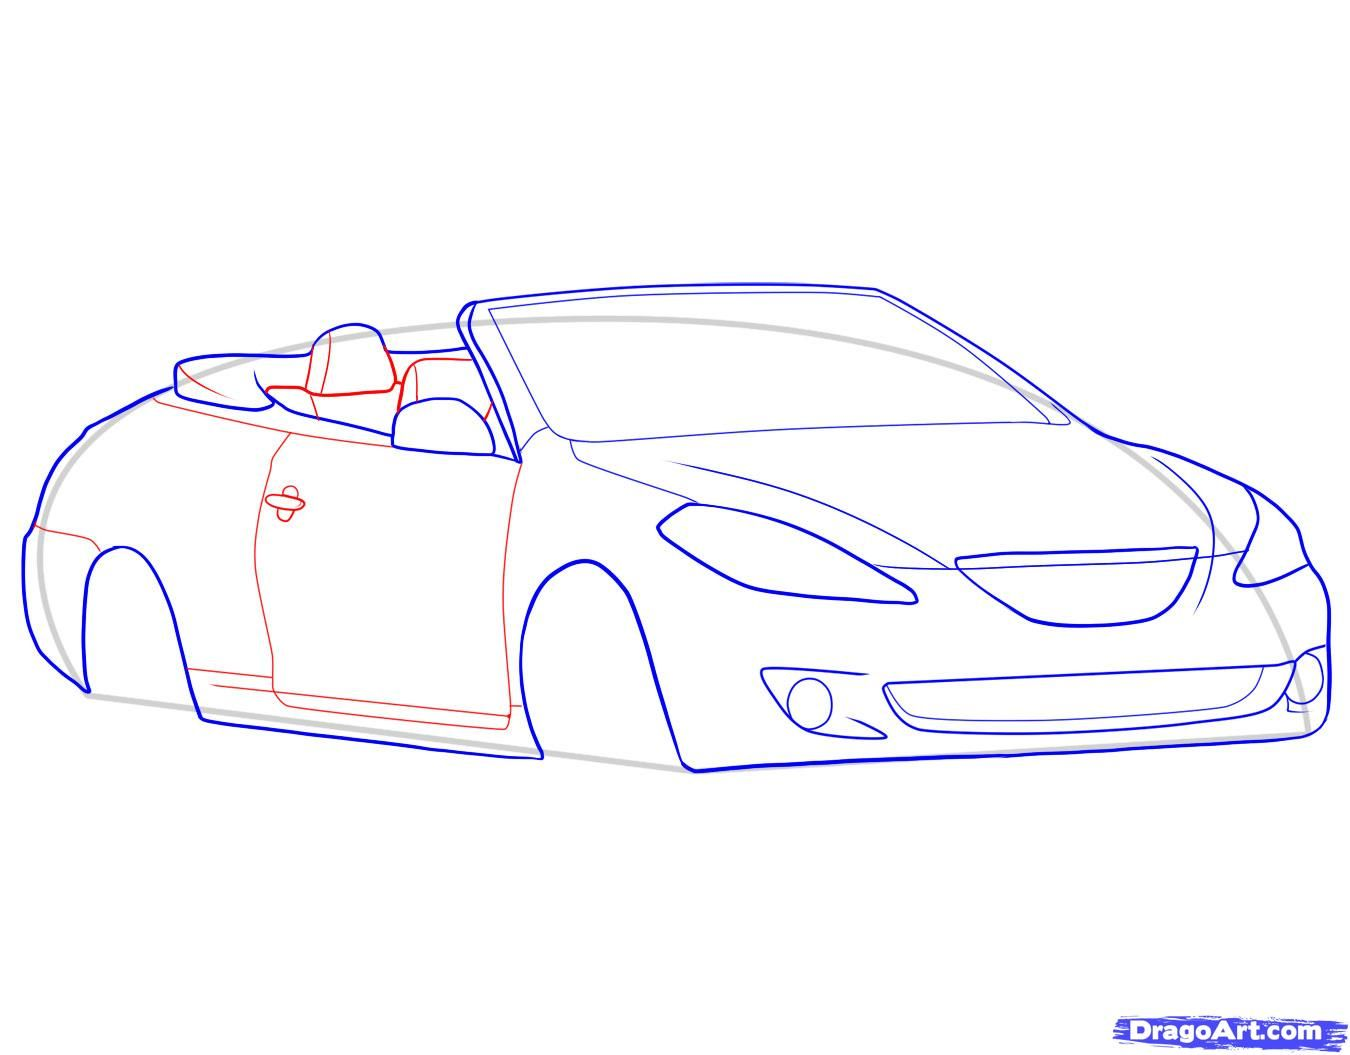 How to draw the Camaro car step by step 7